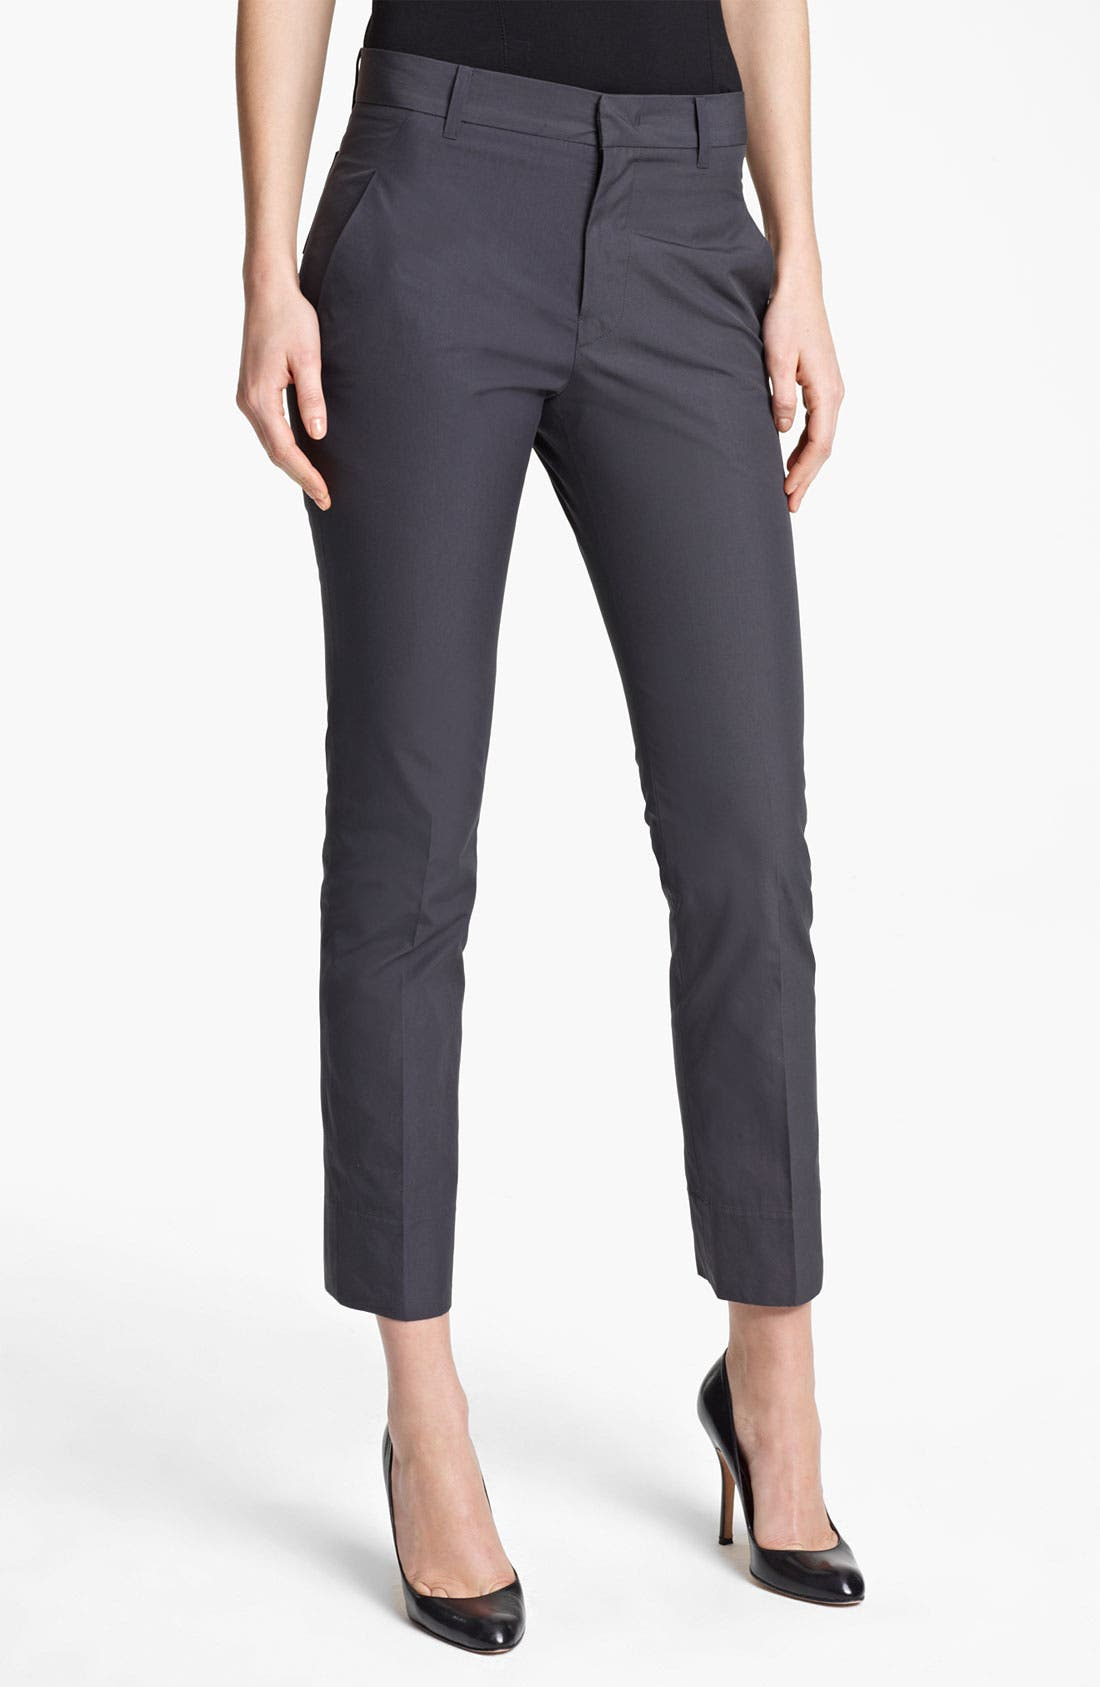 Alternate Image 1 Selected - Jil Sander 'Niccolo' Slim Leg Cotton Taffeta Ankle Pants